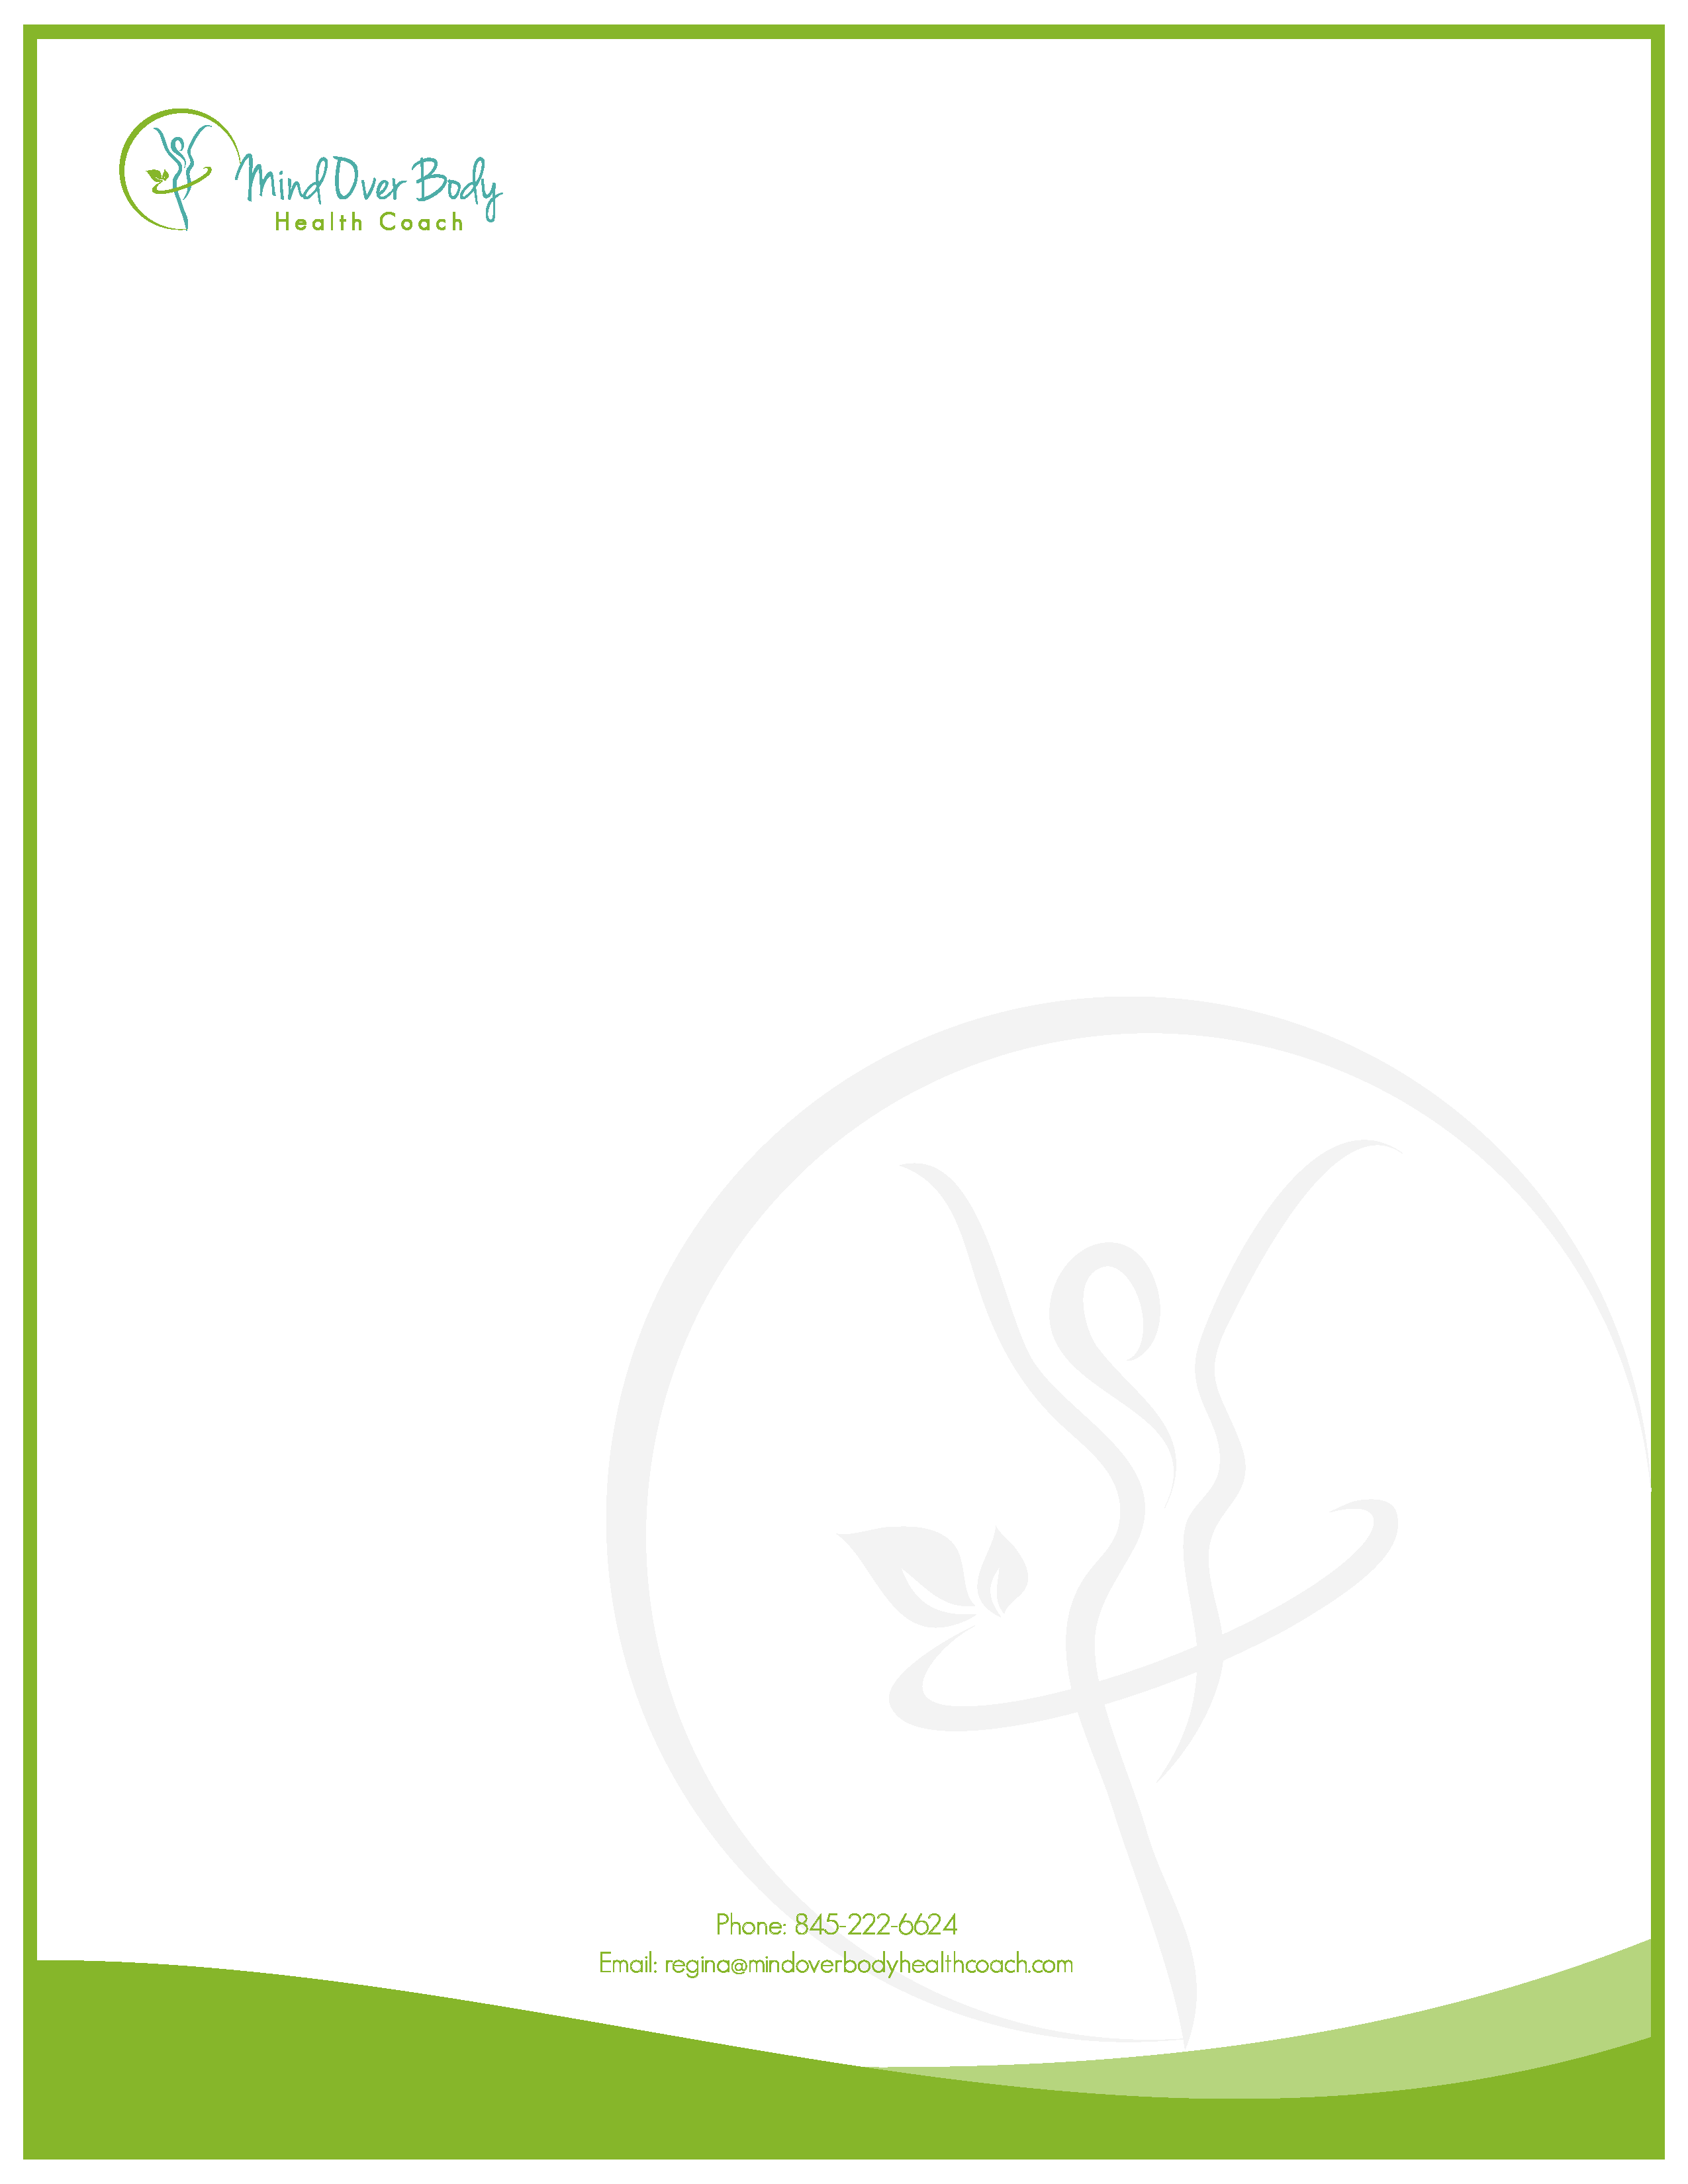 Clutch coupon and letterhead template